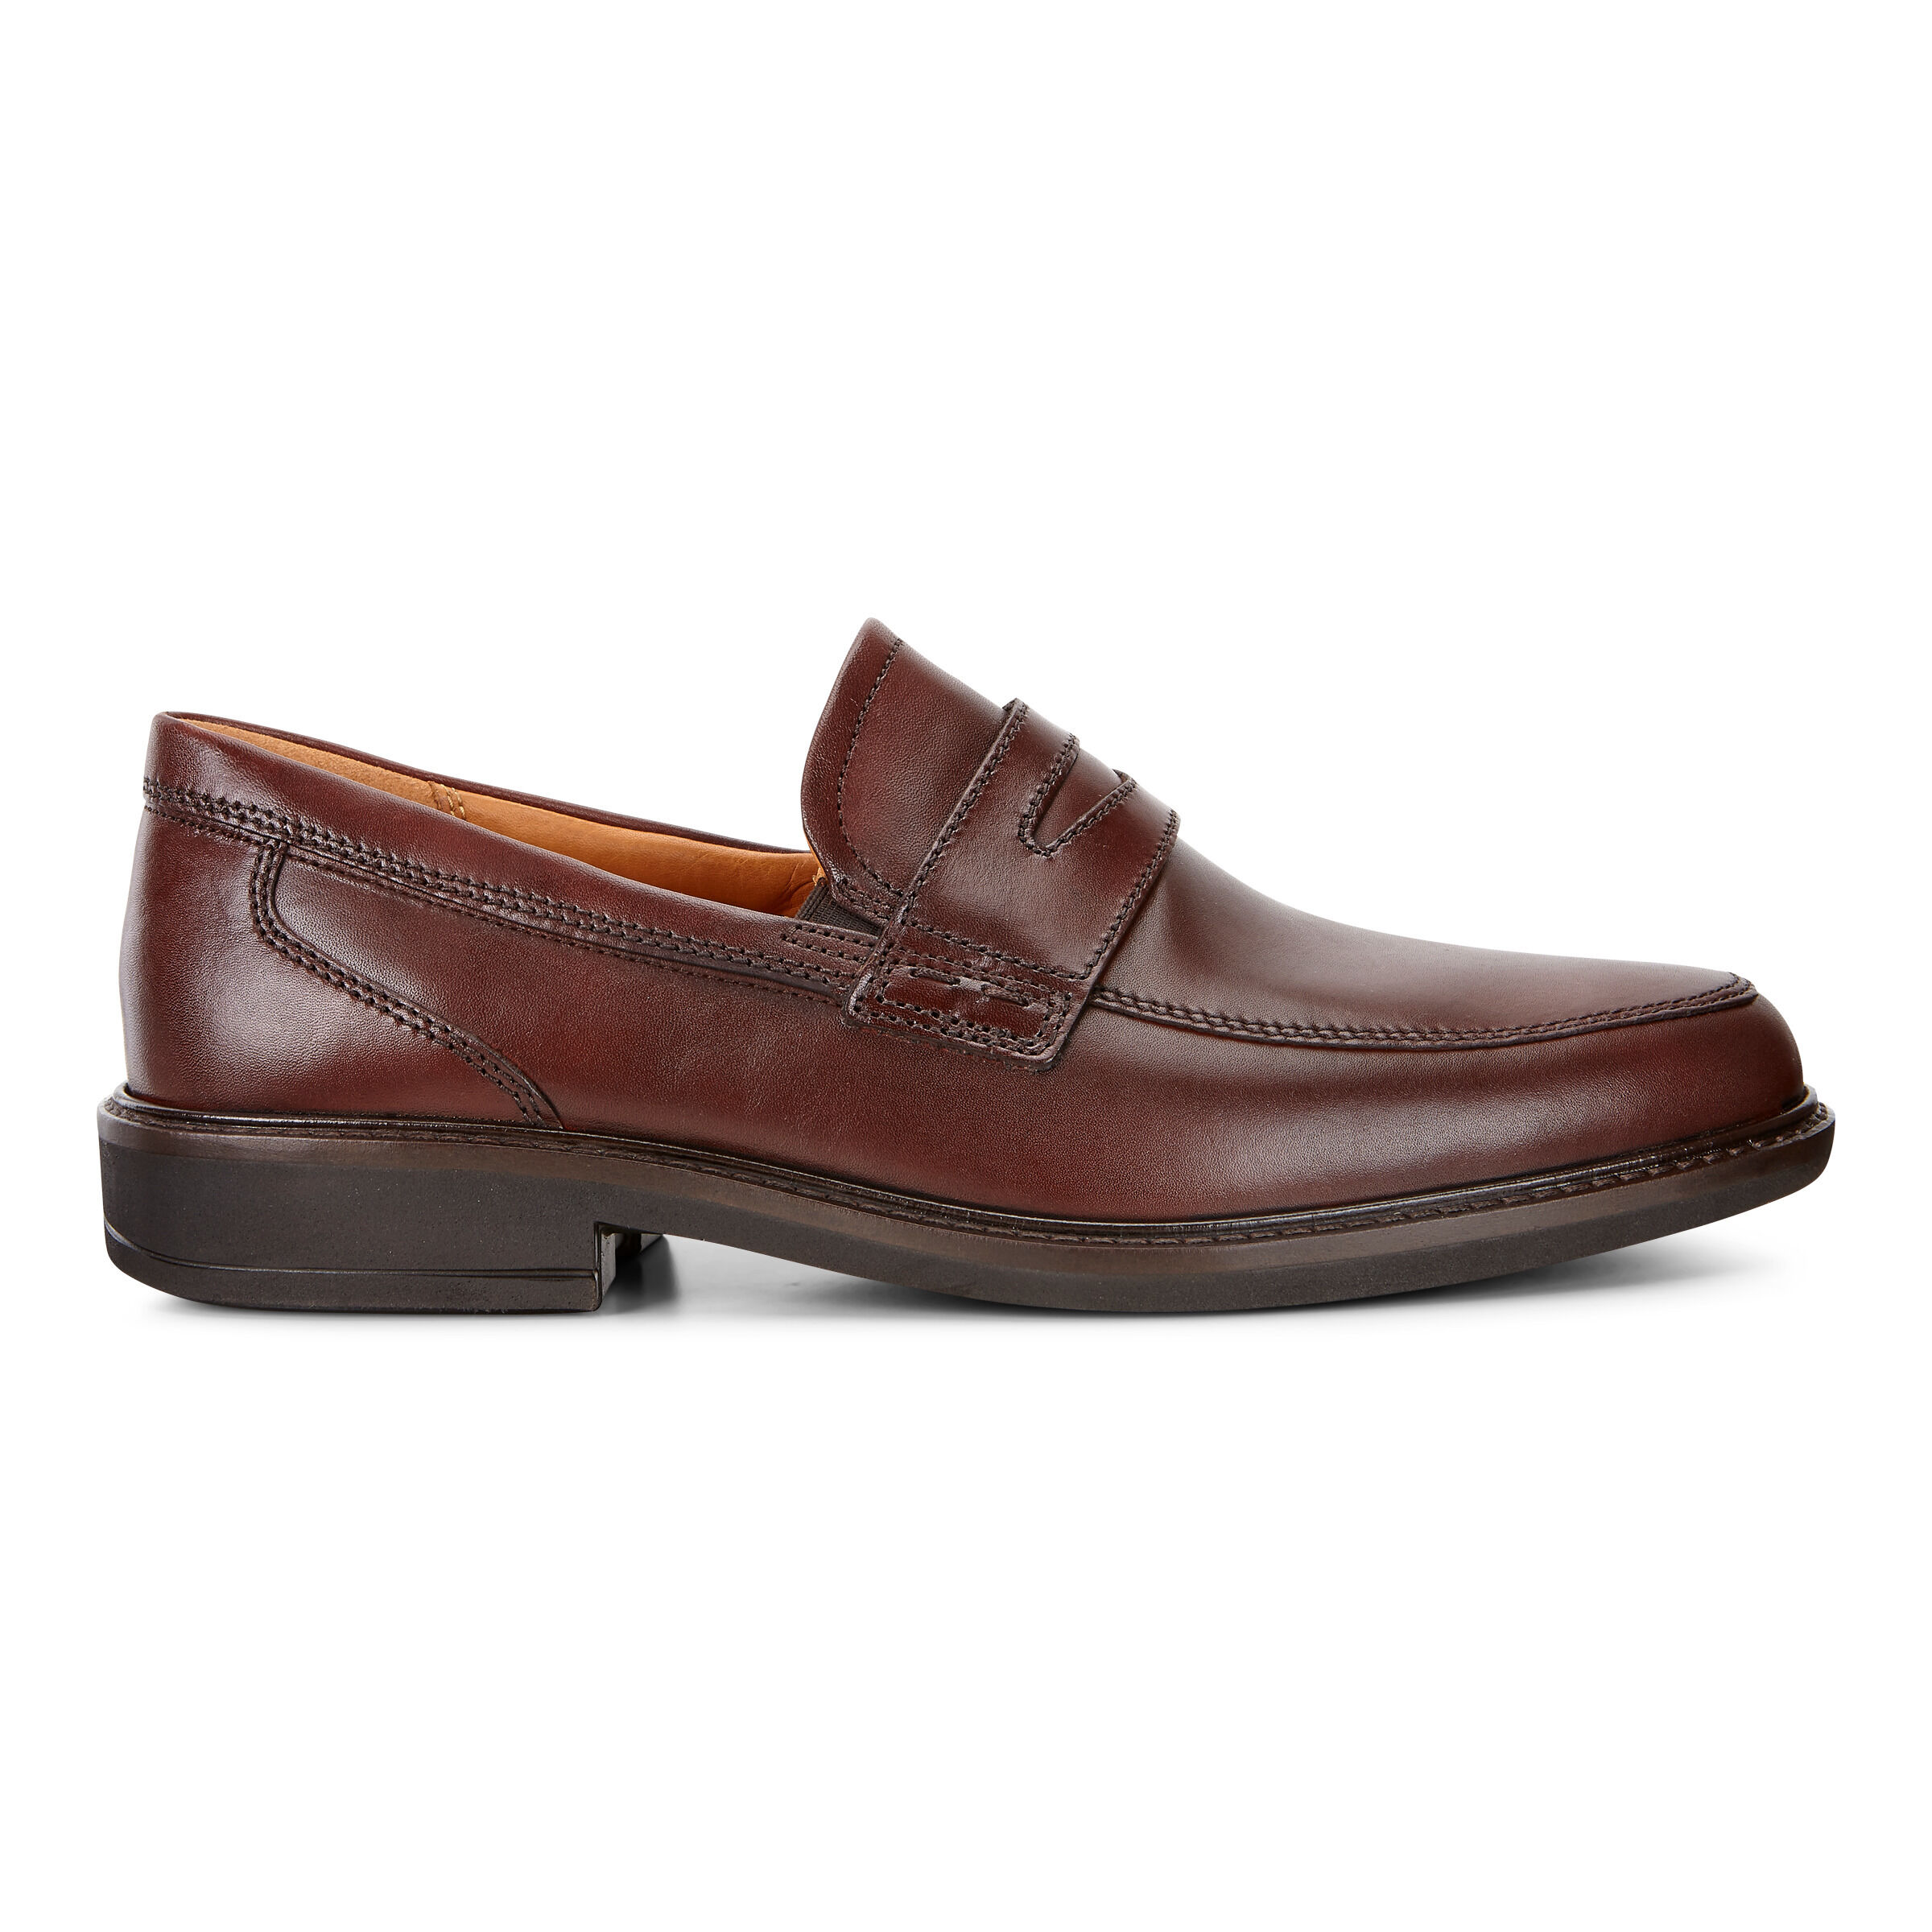 ecco penny loafer